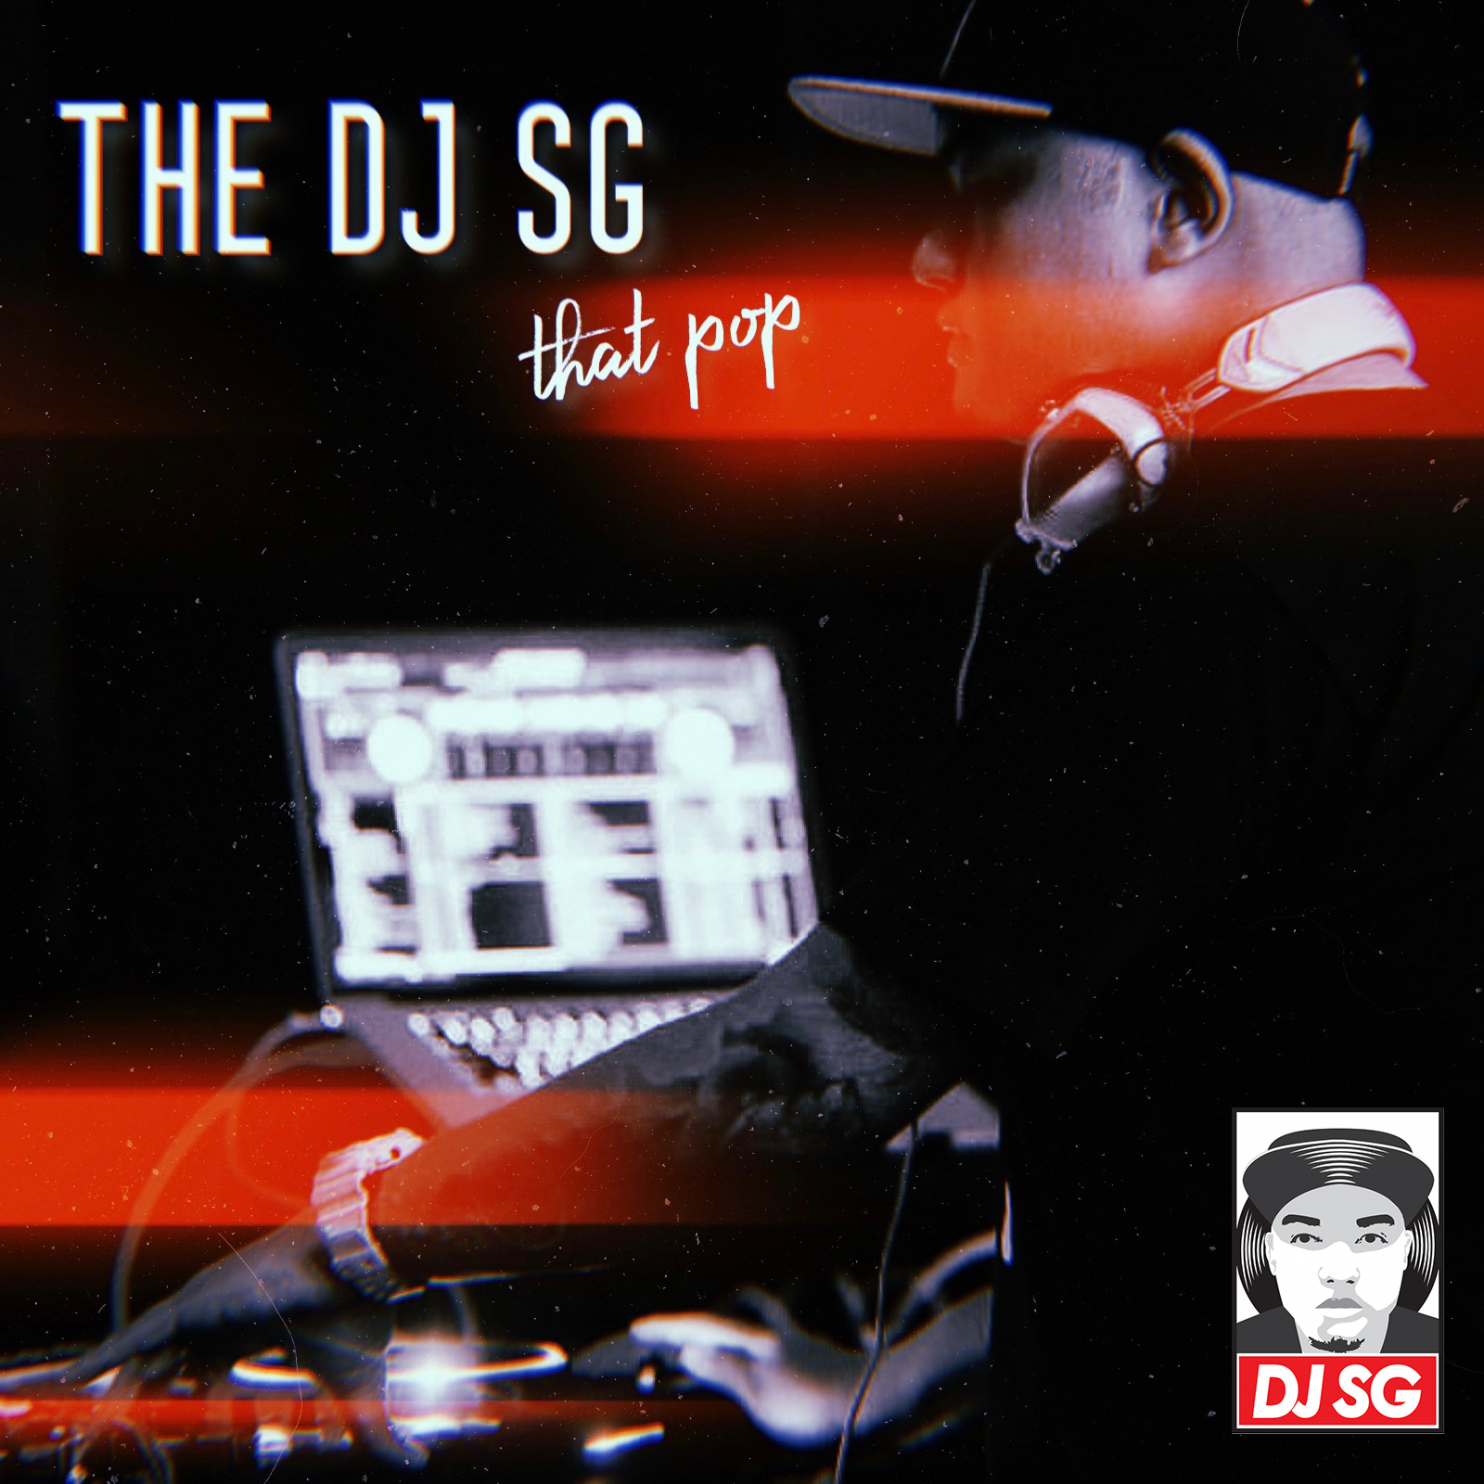 DJ SG - that pop (mix), episode 1